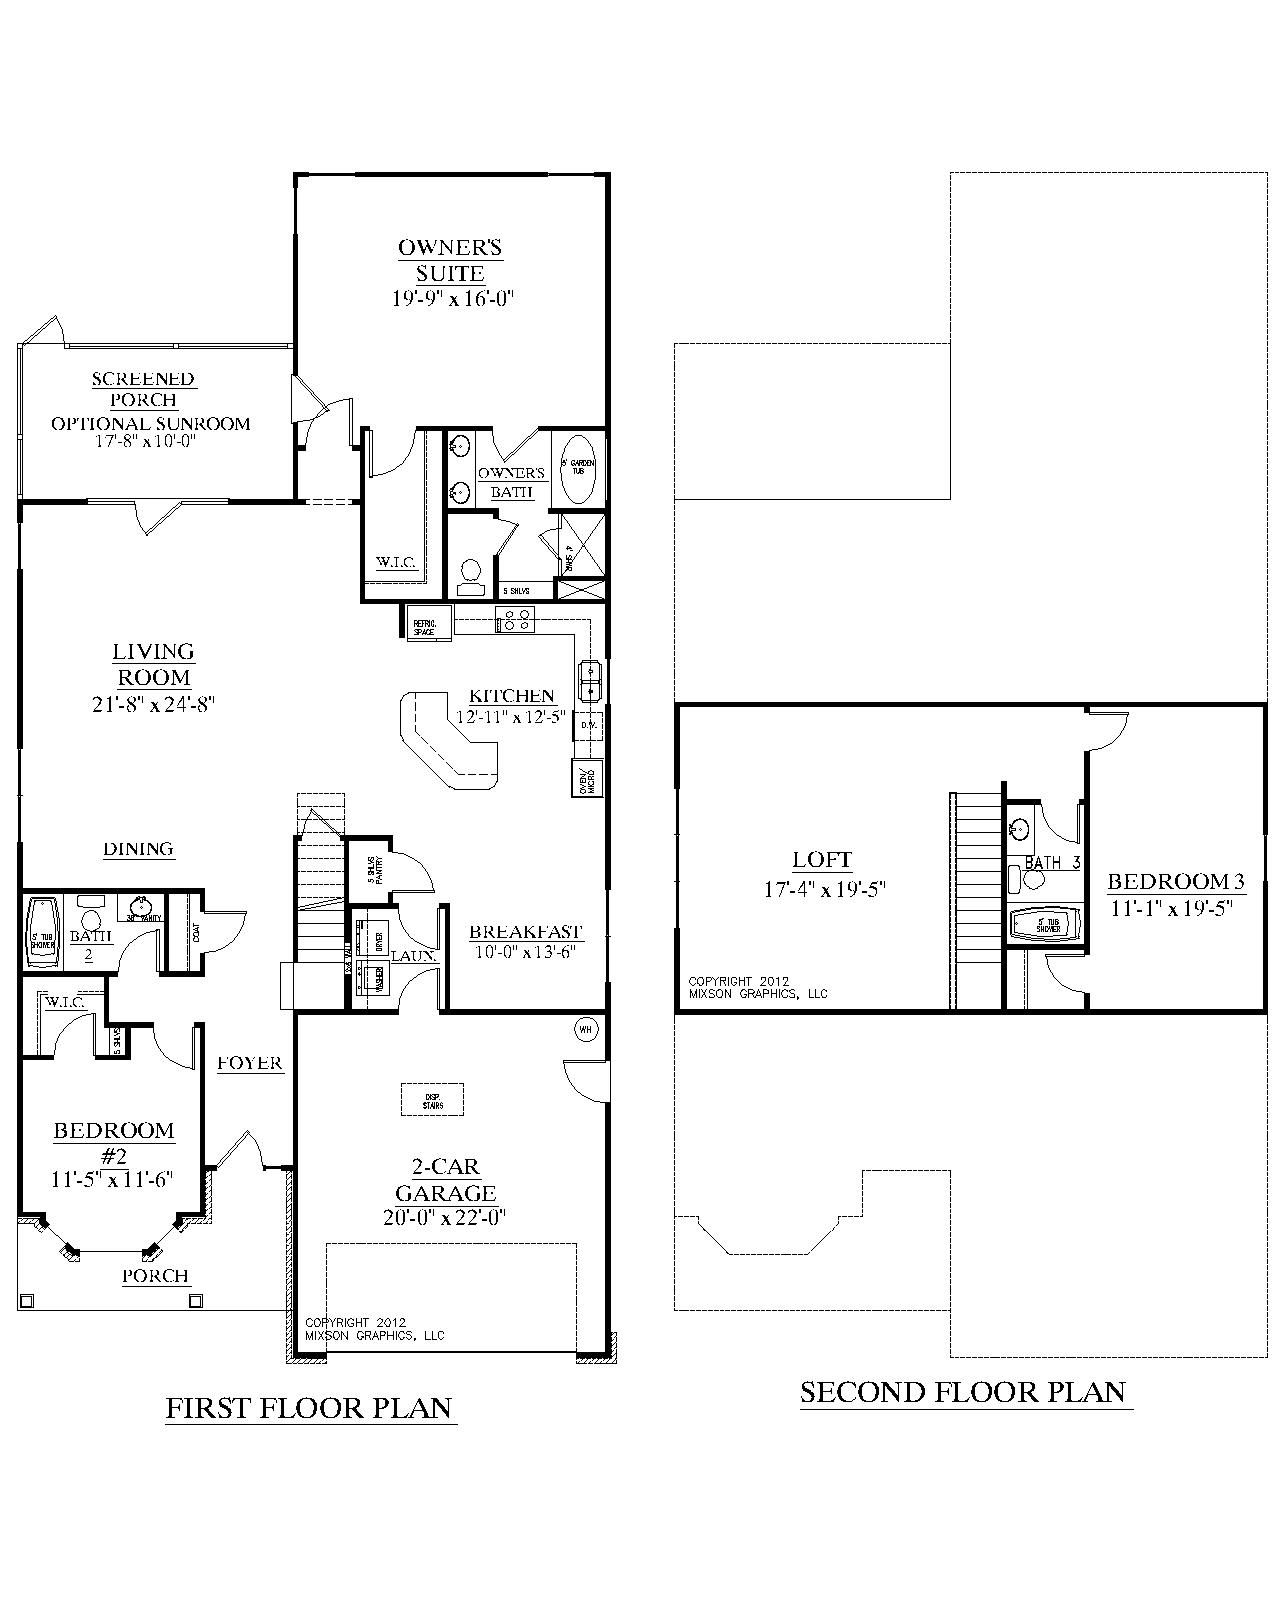 House plan 2632 azalea floor plan traditional 1 1 2 for 2 story house plans master bedroom downstairs